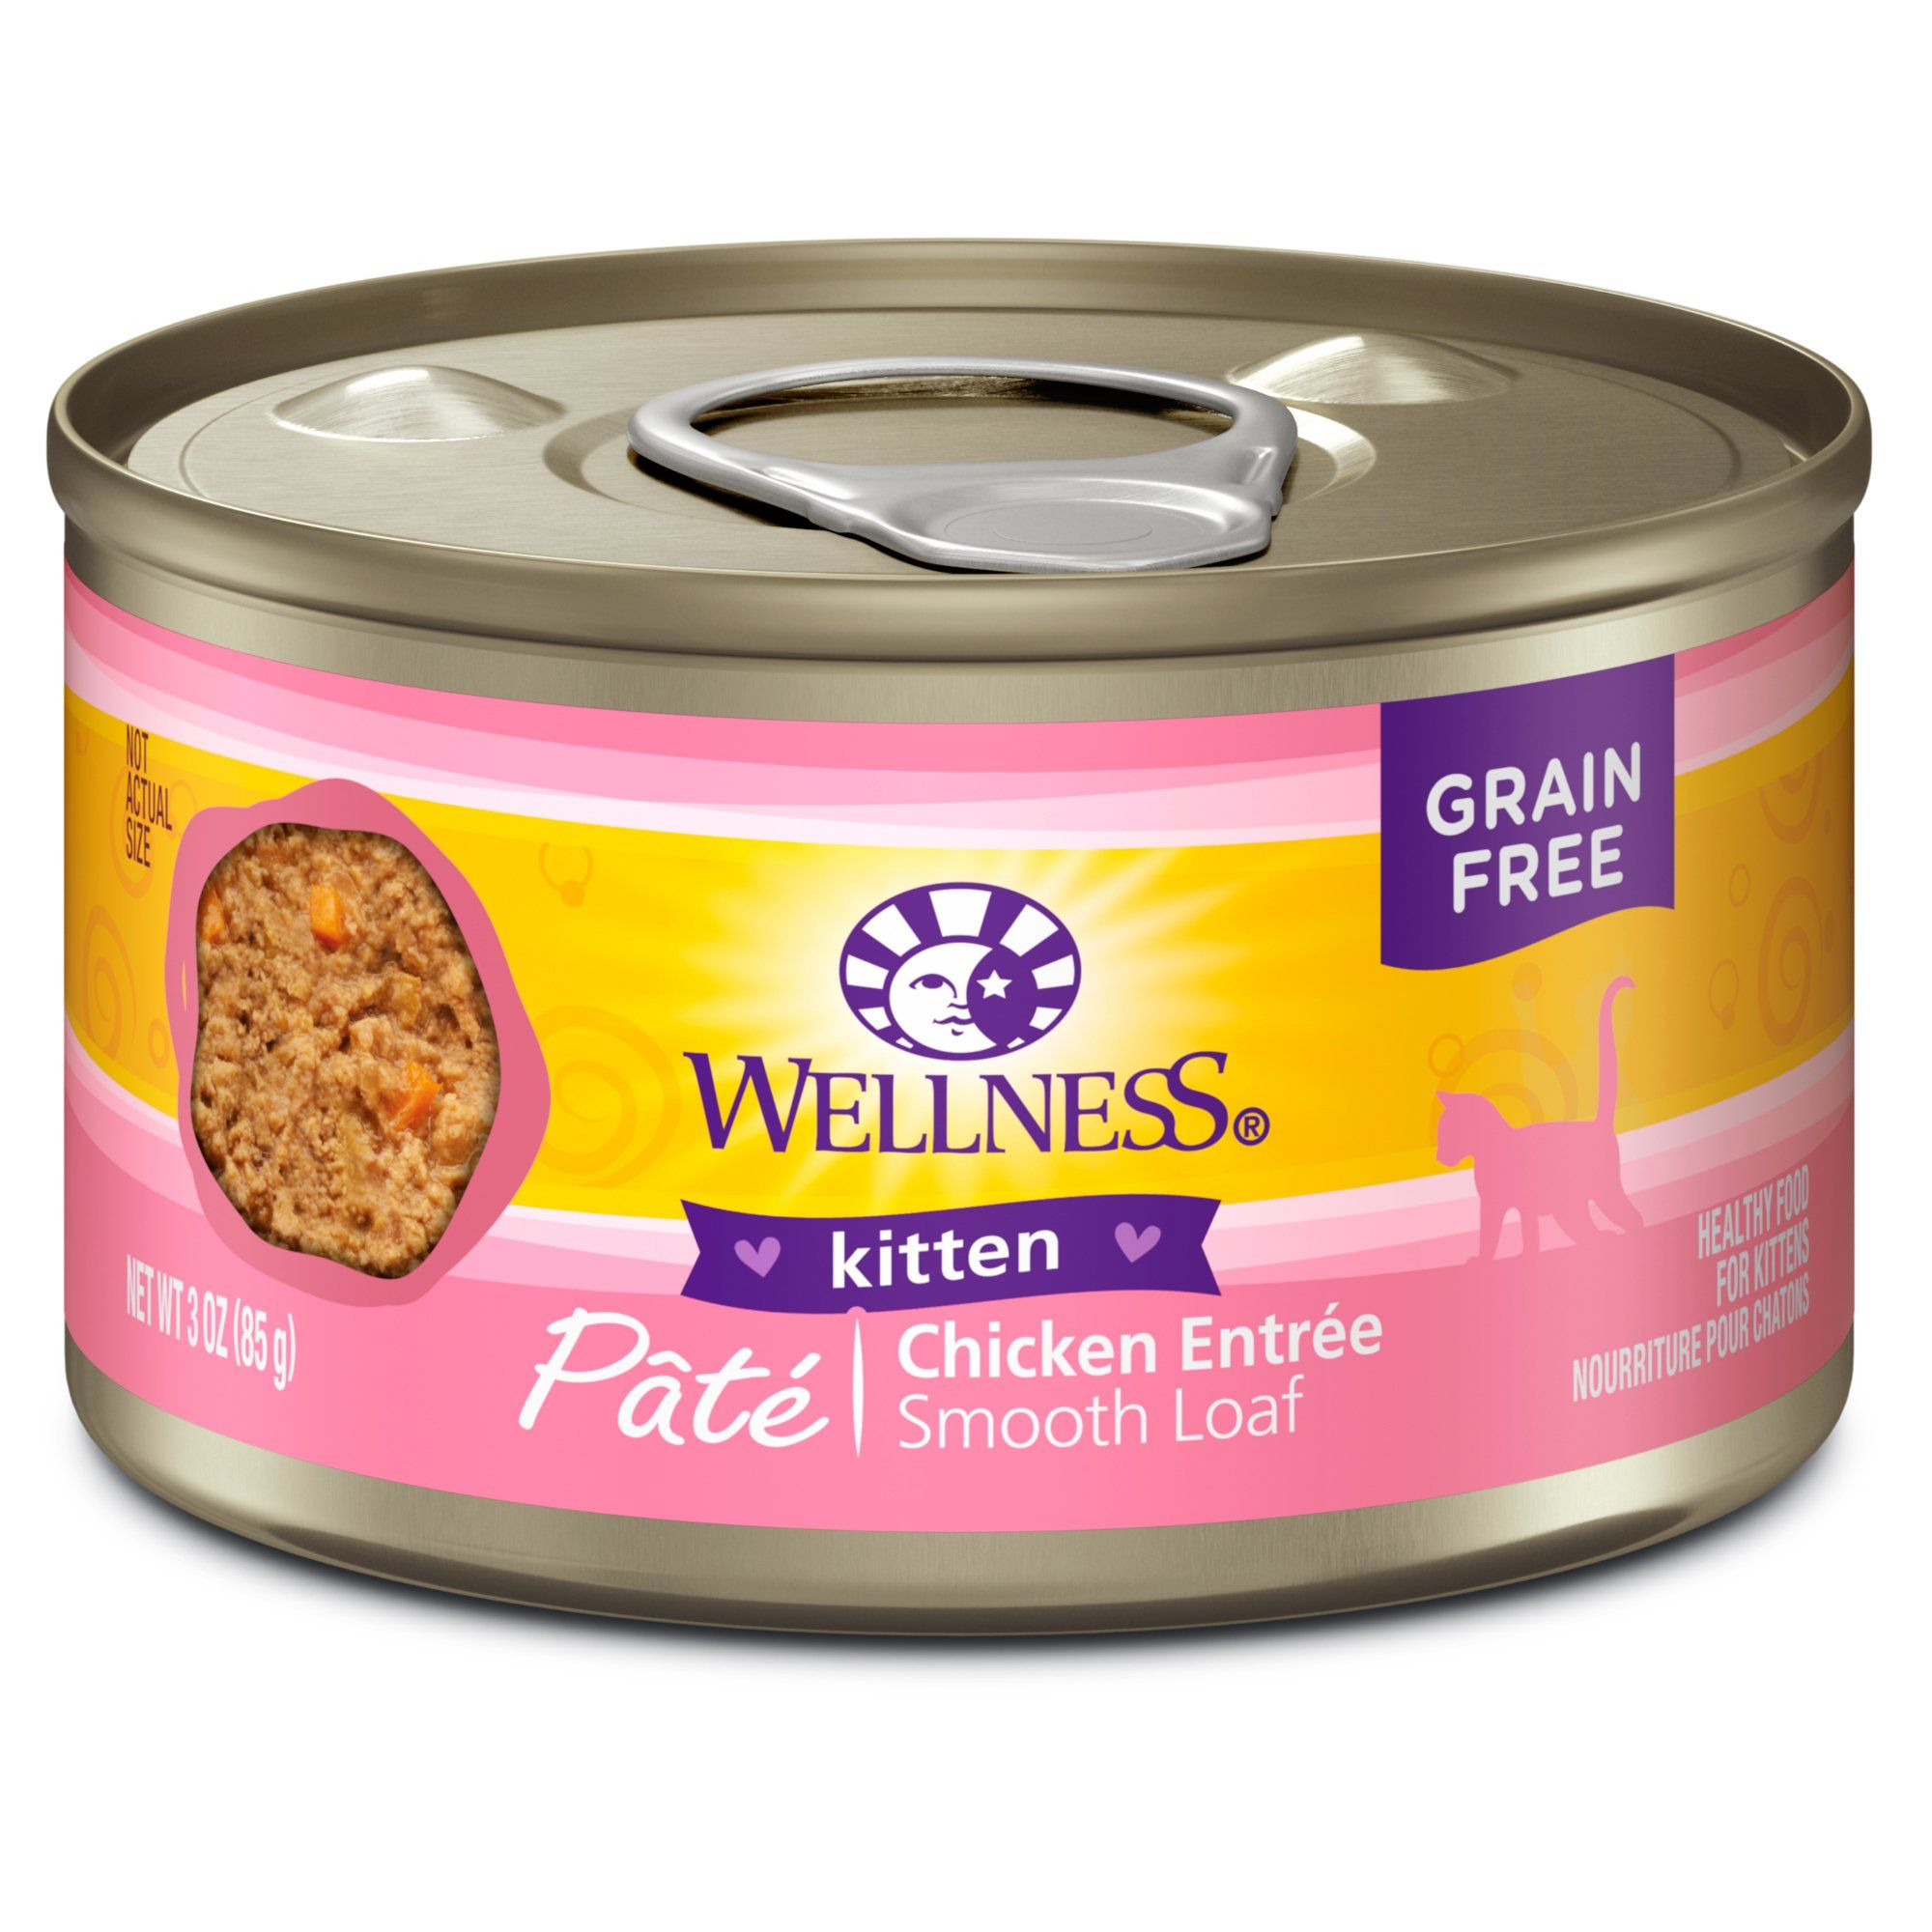 Wellness Complete Health Natural Grain Free Kitten Wet Cat Food 3 Oz Case Of 24 24 X 3 Oz Canned Cat Food Food Health Chicken Recipes